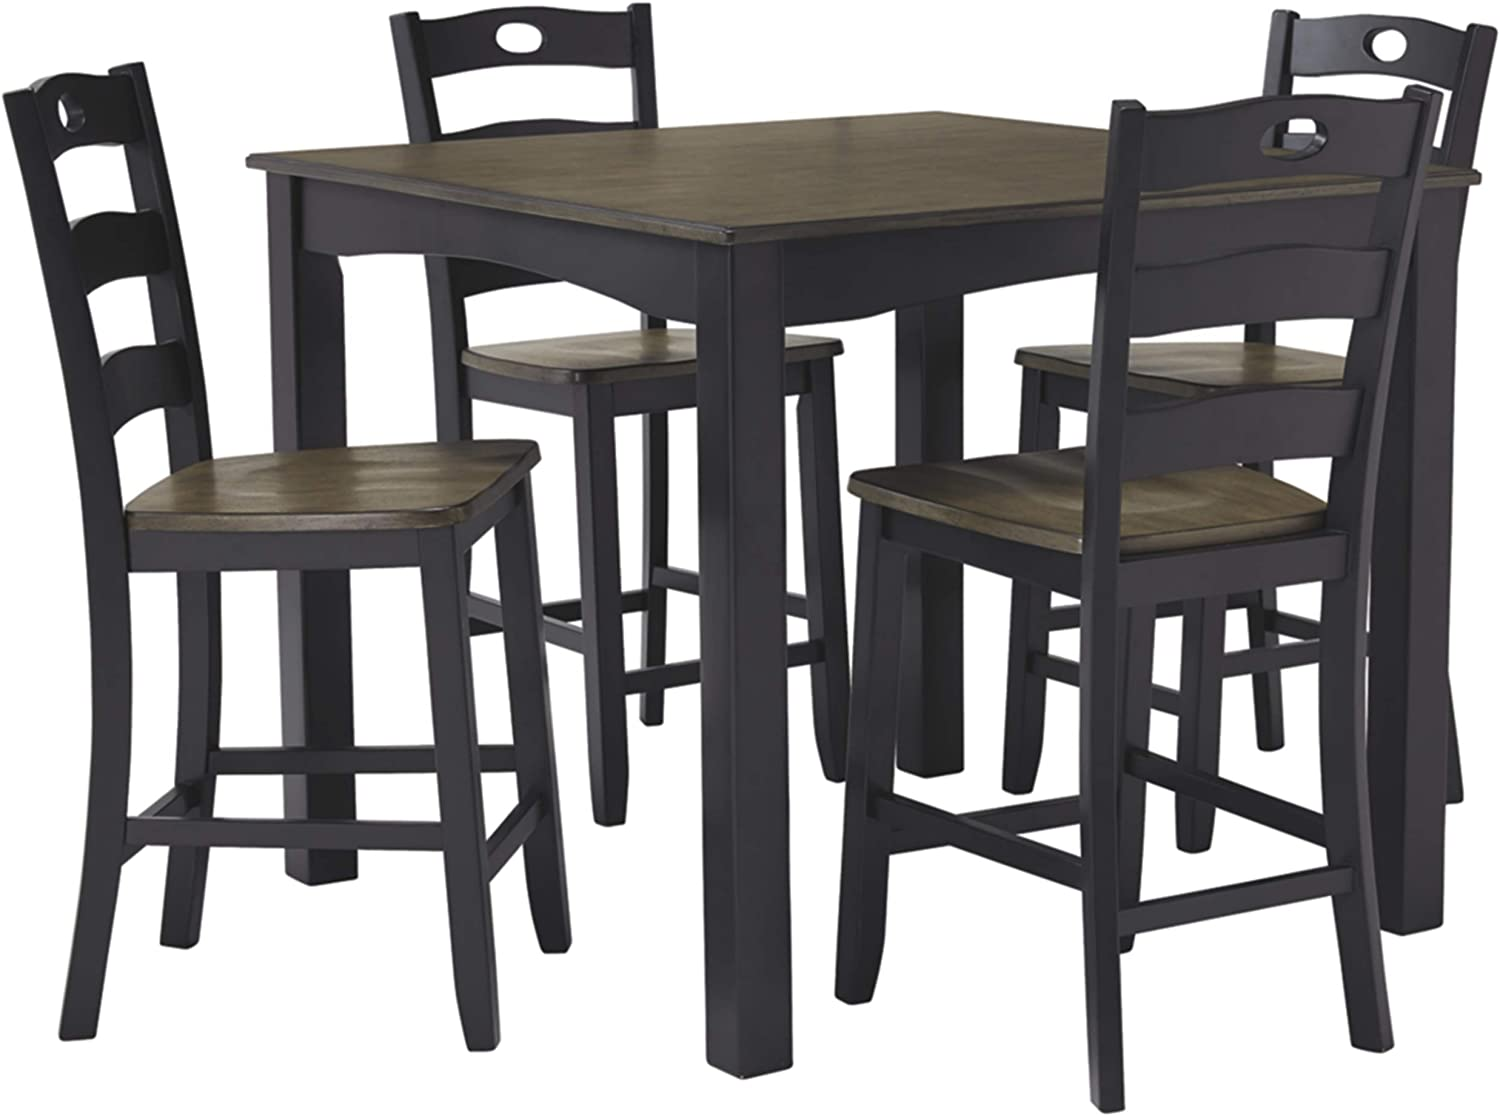 Signature Design By Ashley - Froshburg Square Counter Table Set - Set of 5 - Casual Style - Grayish Brown/Black